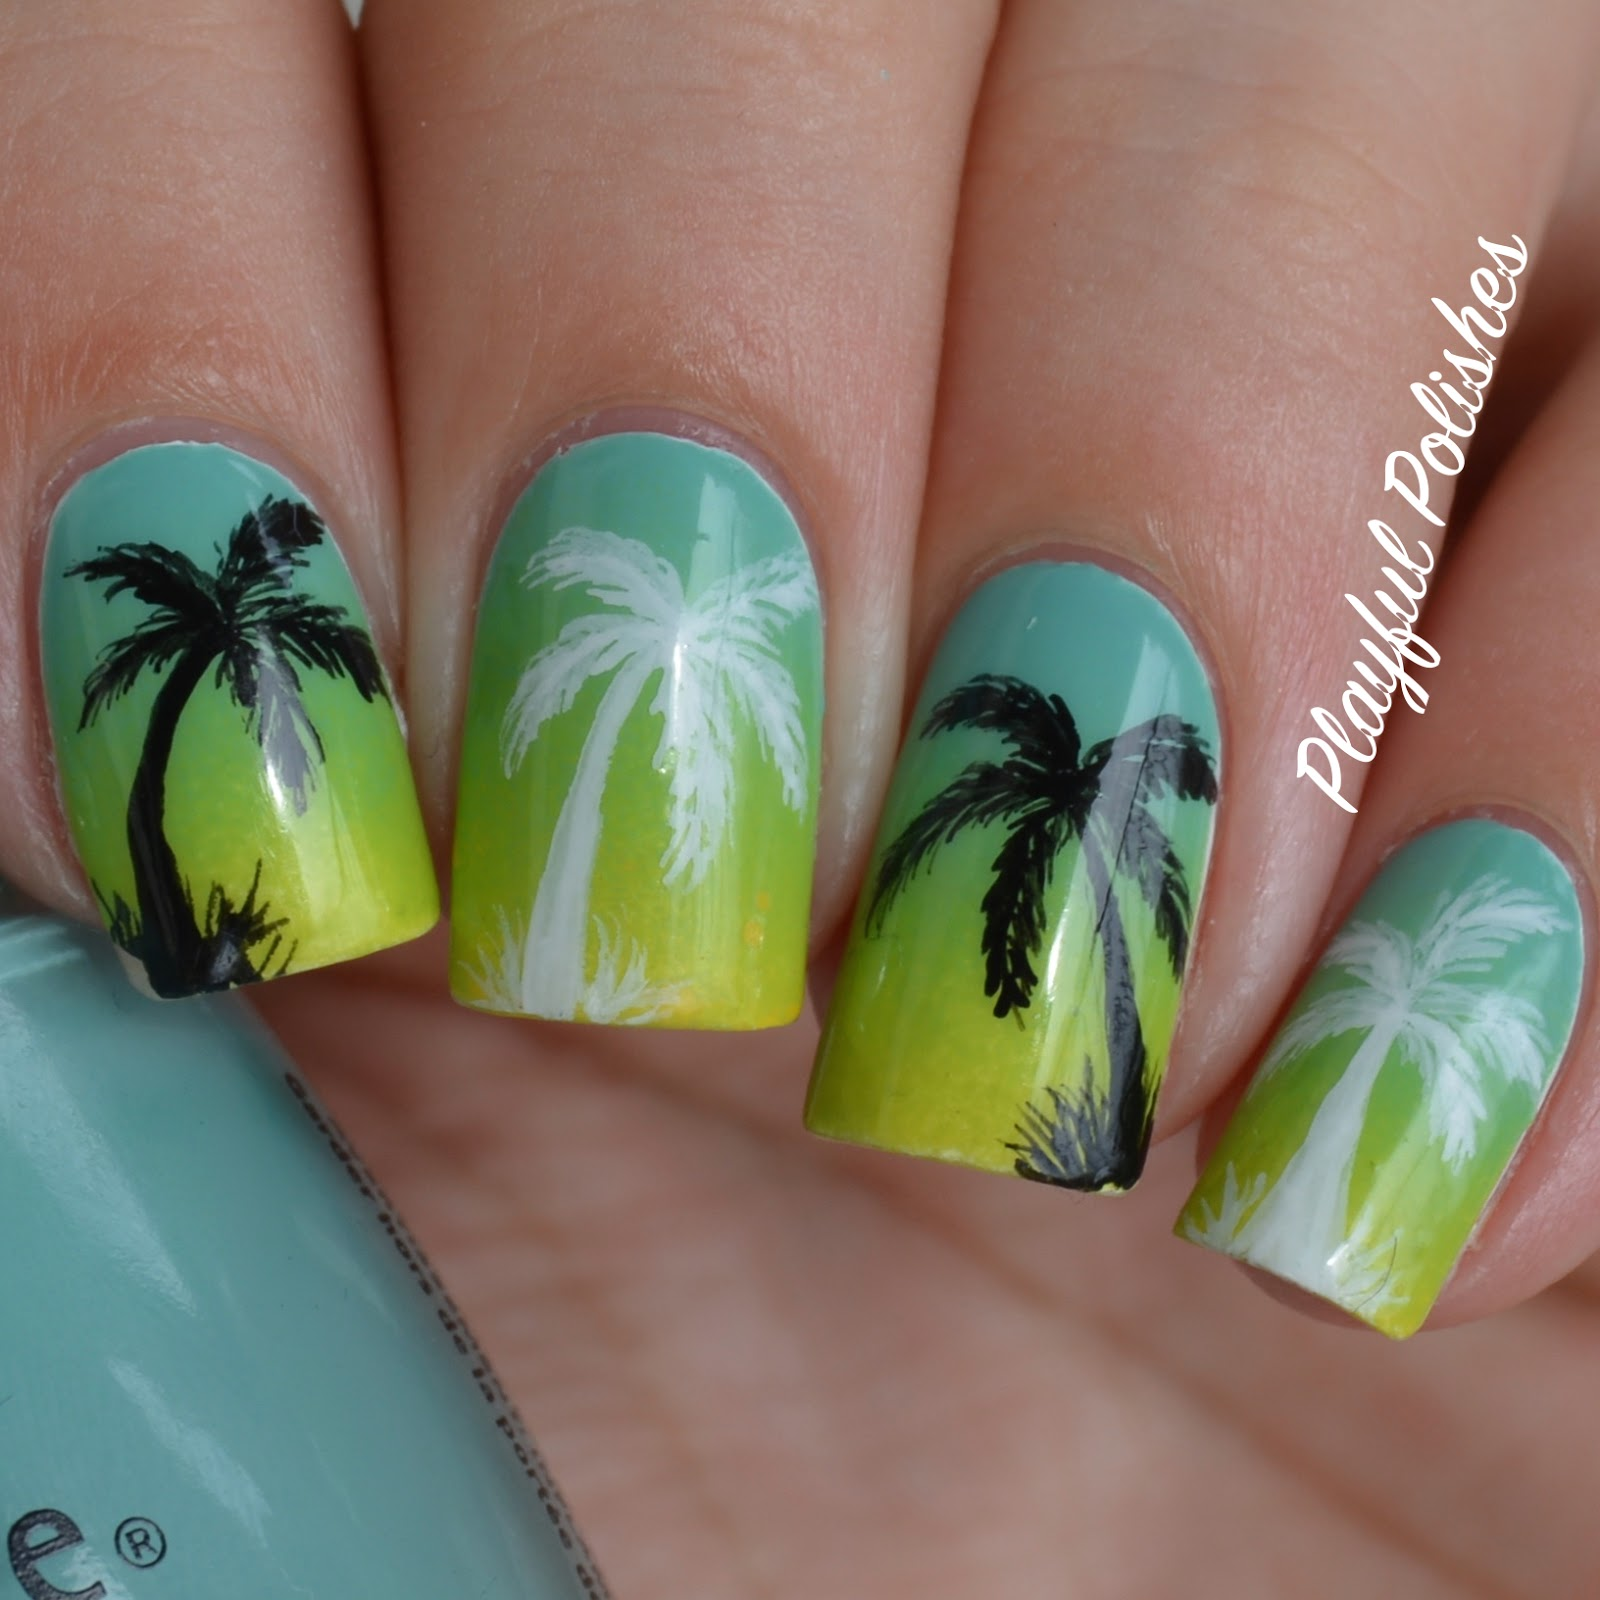 Playful Polishes: GRADIENT PALM TREE NAIL ART